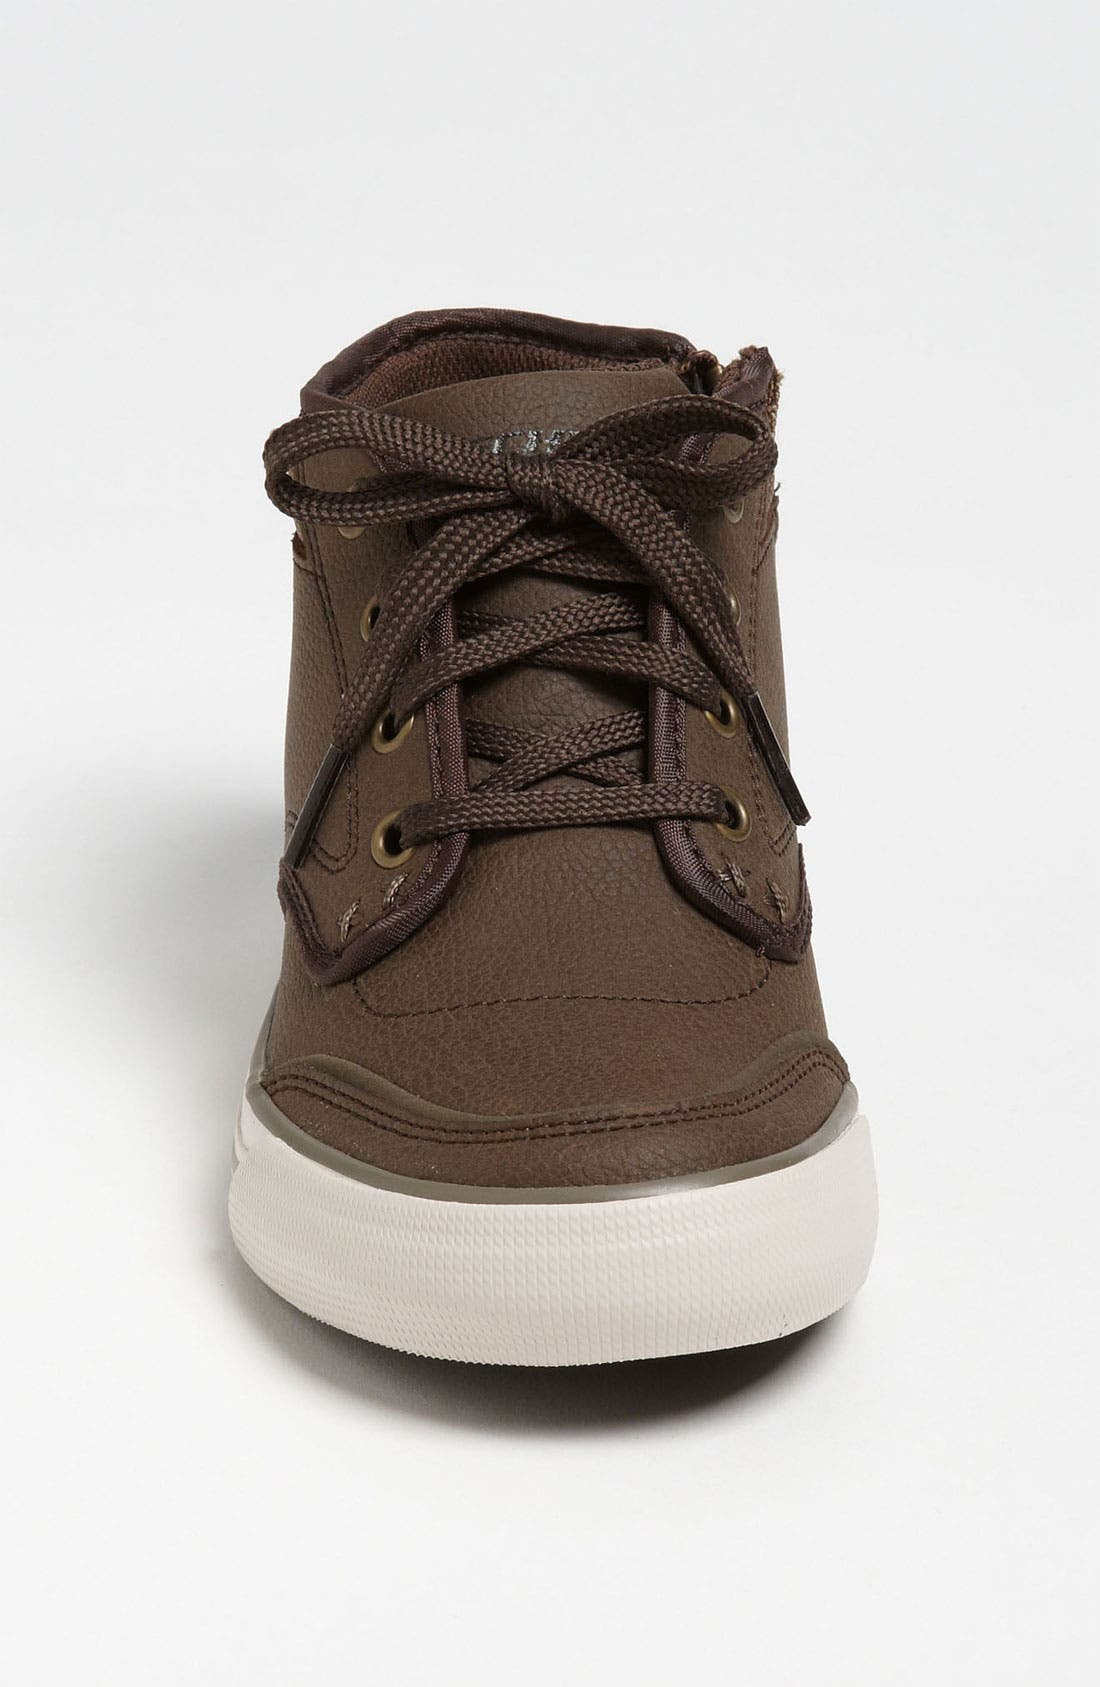 Alternate Image 3  - SKECHERS 'Planfix' Sneaker (Toddler, Little Kid & Big Kid)